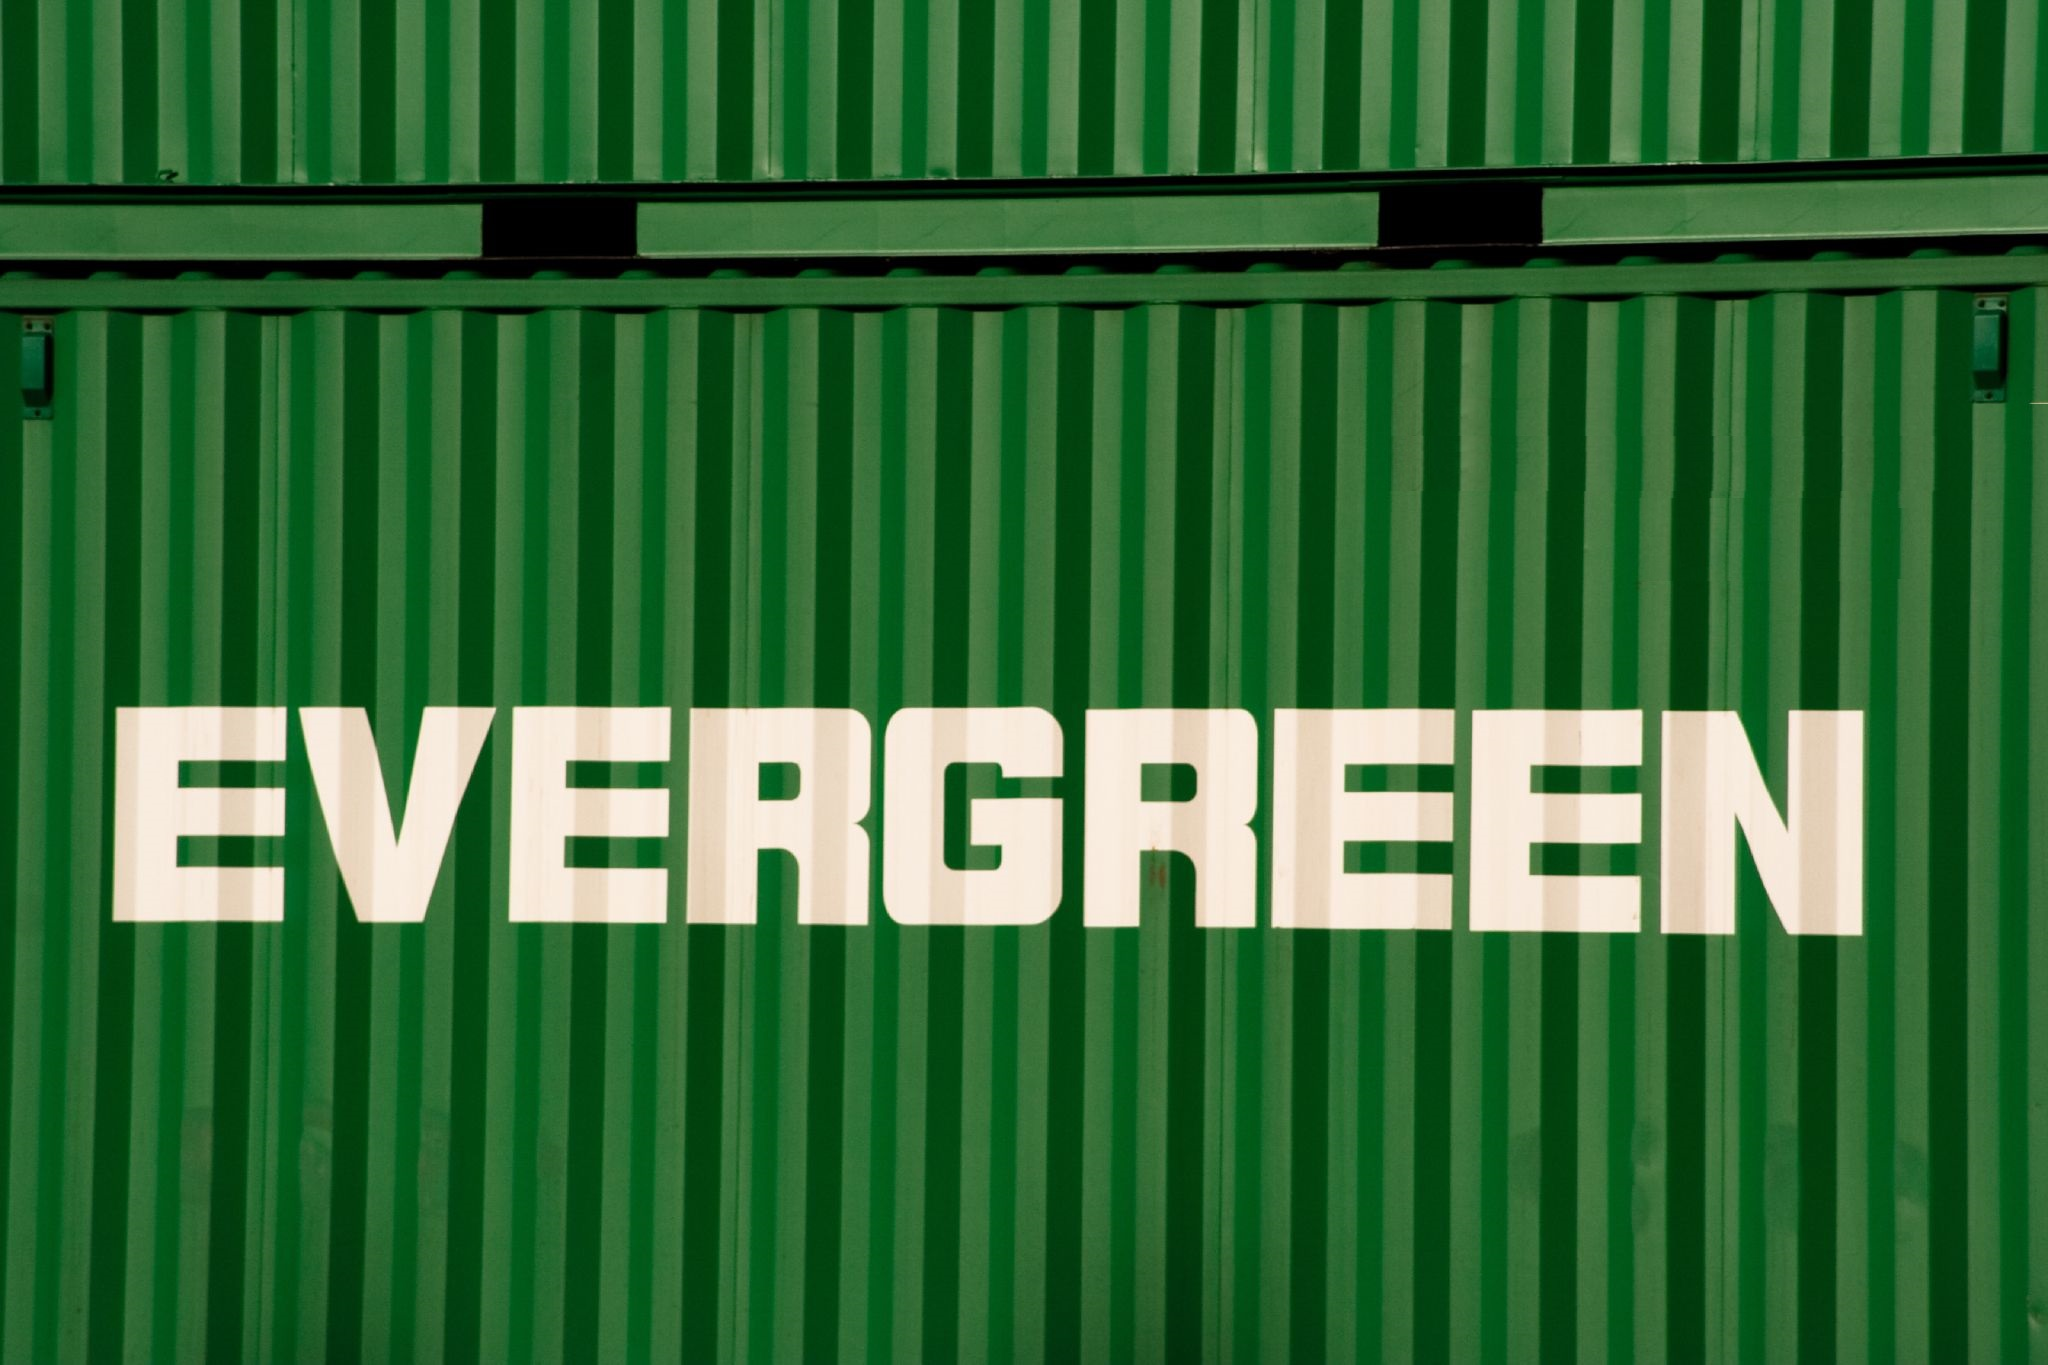 7 Tips that Make Maintaining Evergreen Content Easier | Social Media Today